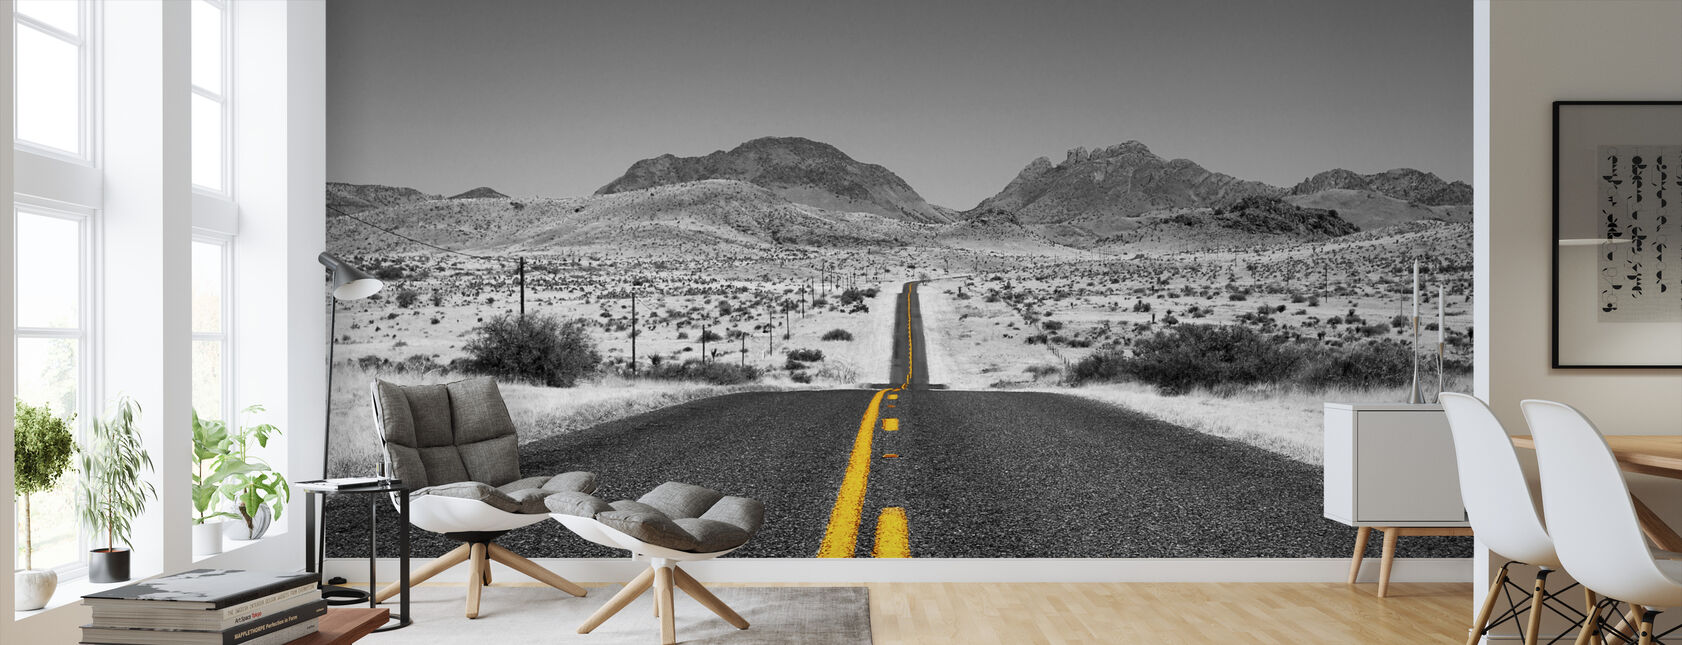 Lost Highway - Colorsplash - Wallpaper - Living Room